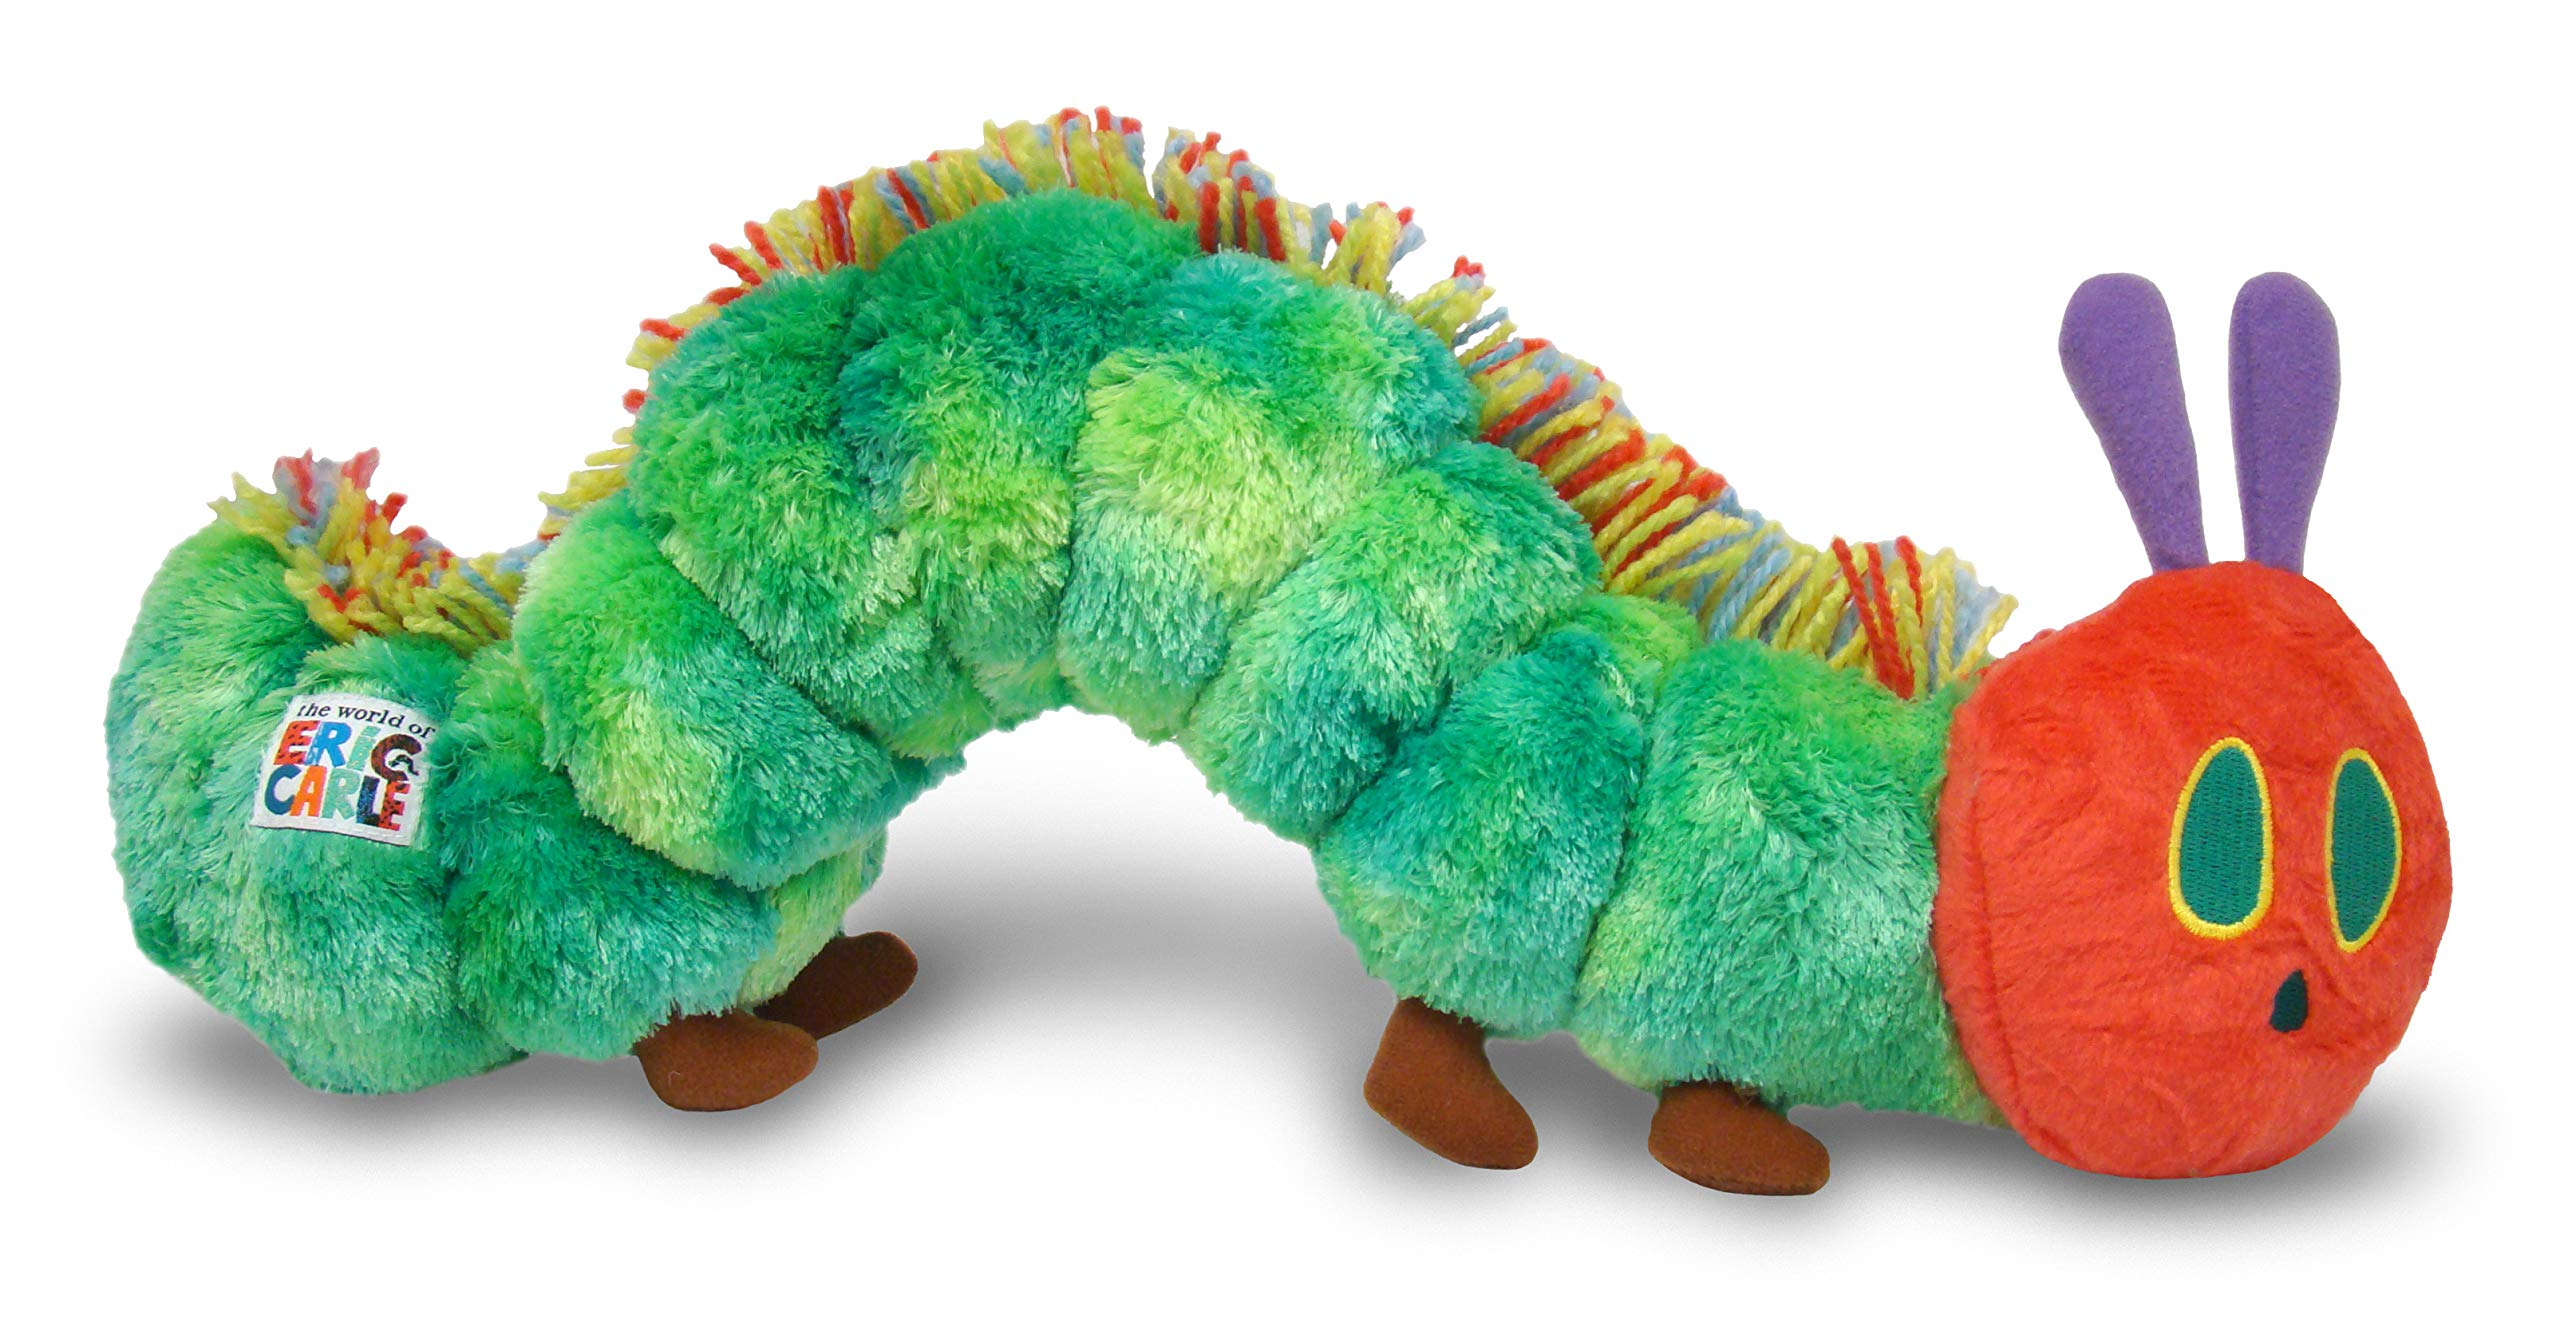 World of Eric Carle, The Very Hungry Caterpillar Plush by KIDS PREFERRED